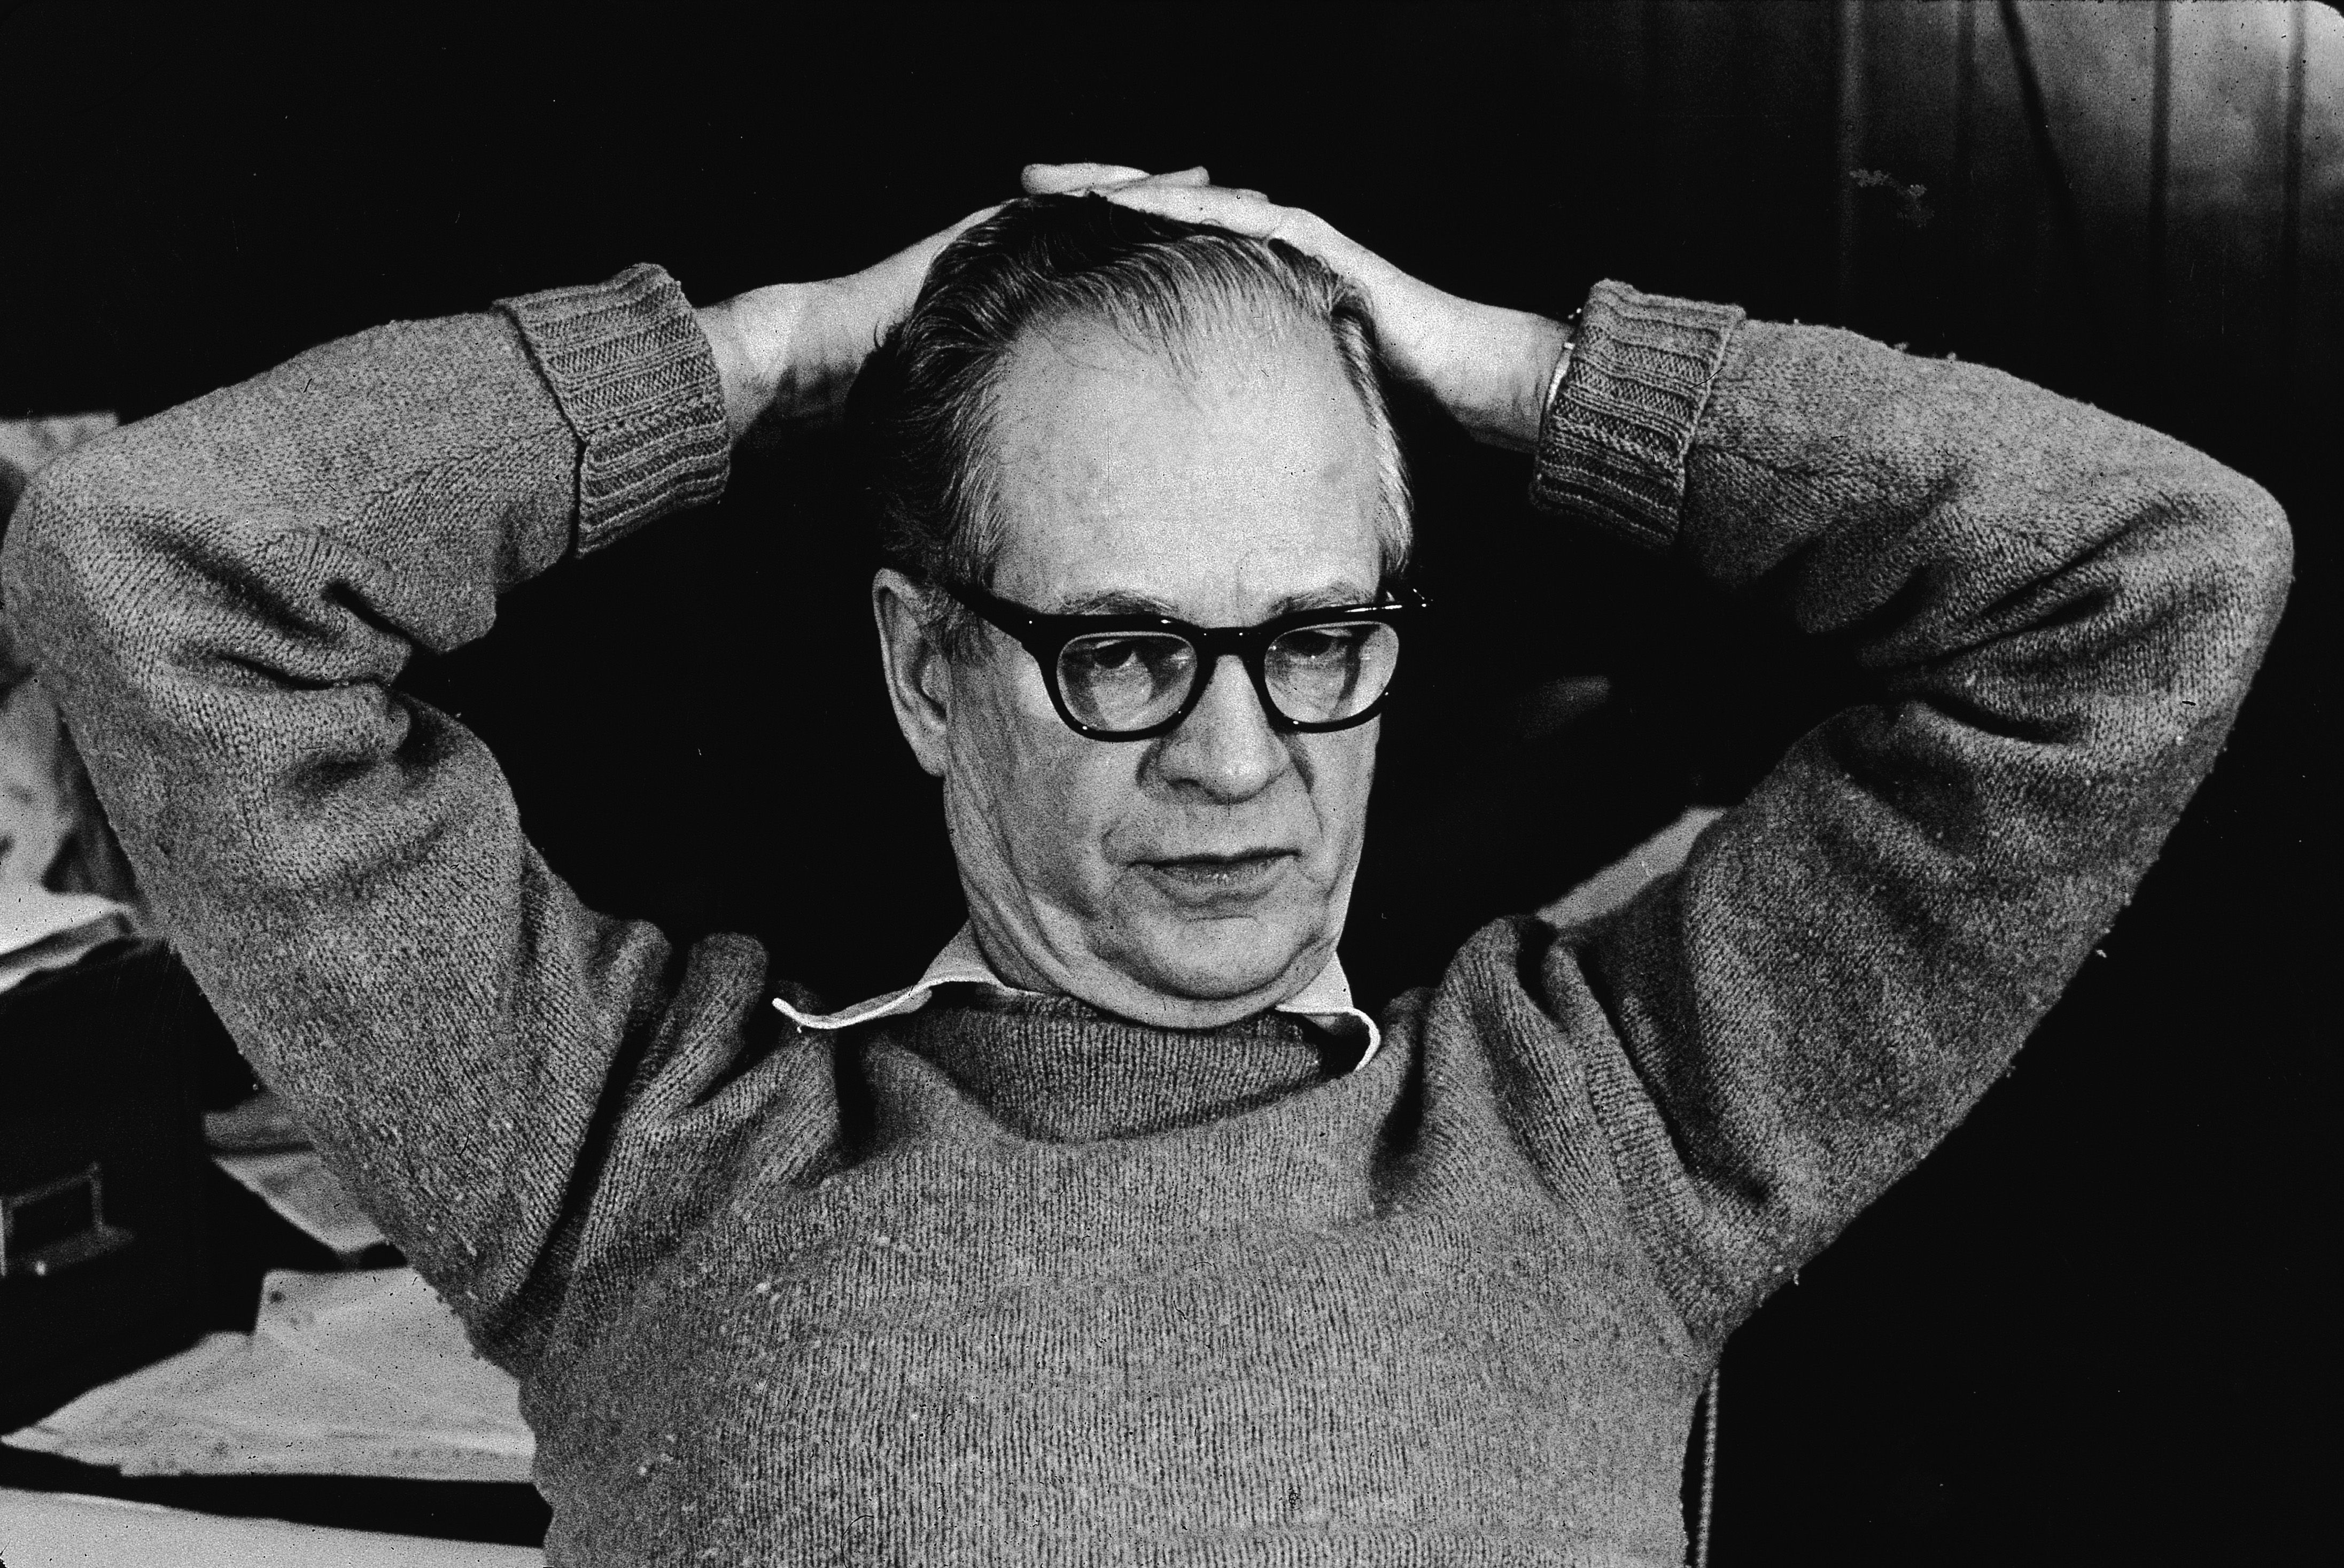 B. F. Skinner with his hands on top of his hand